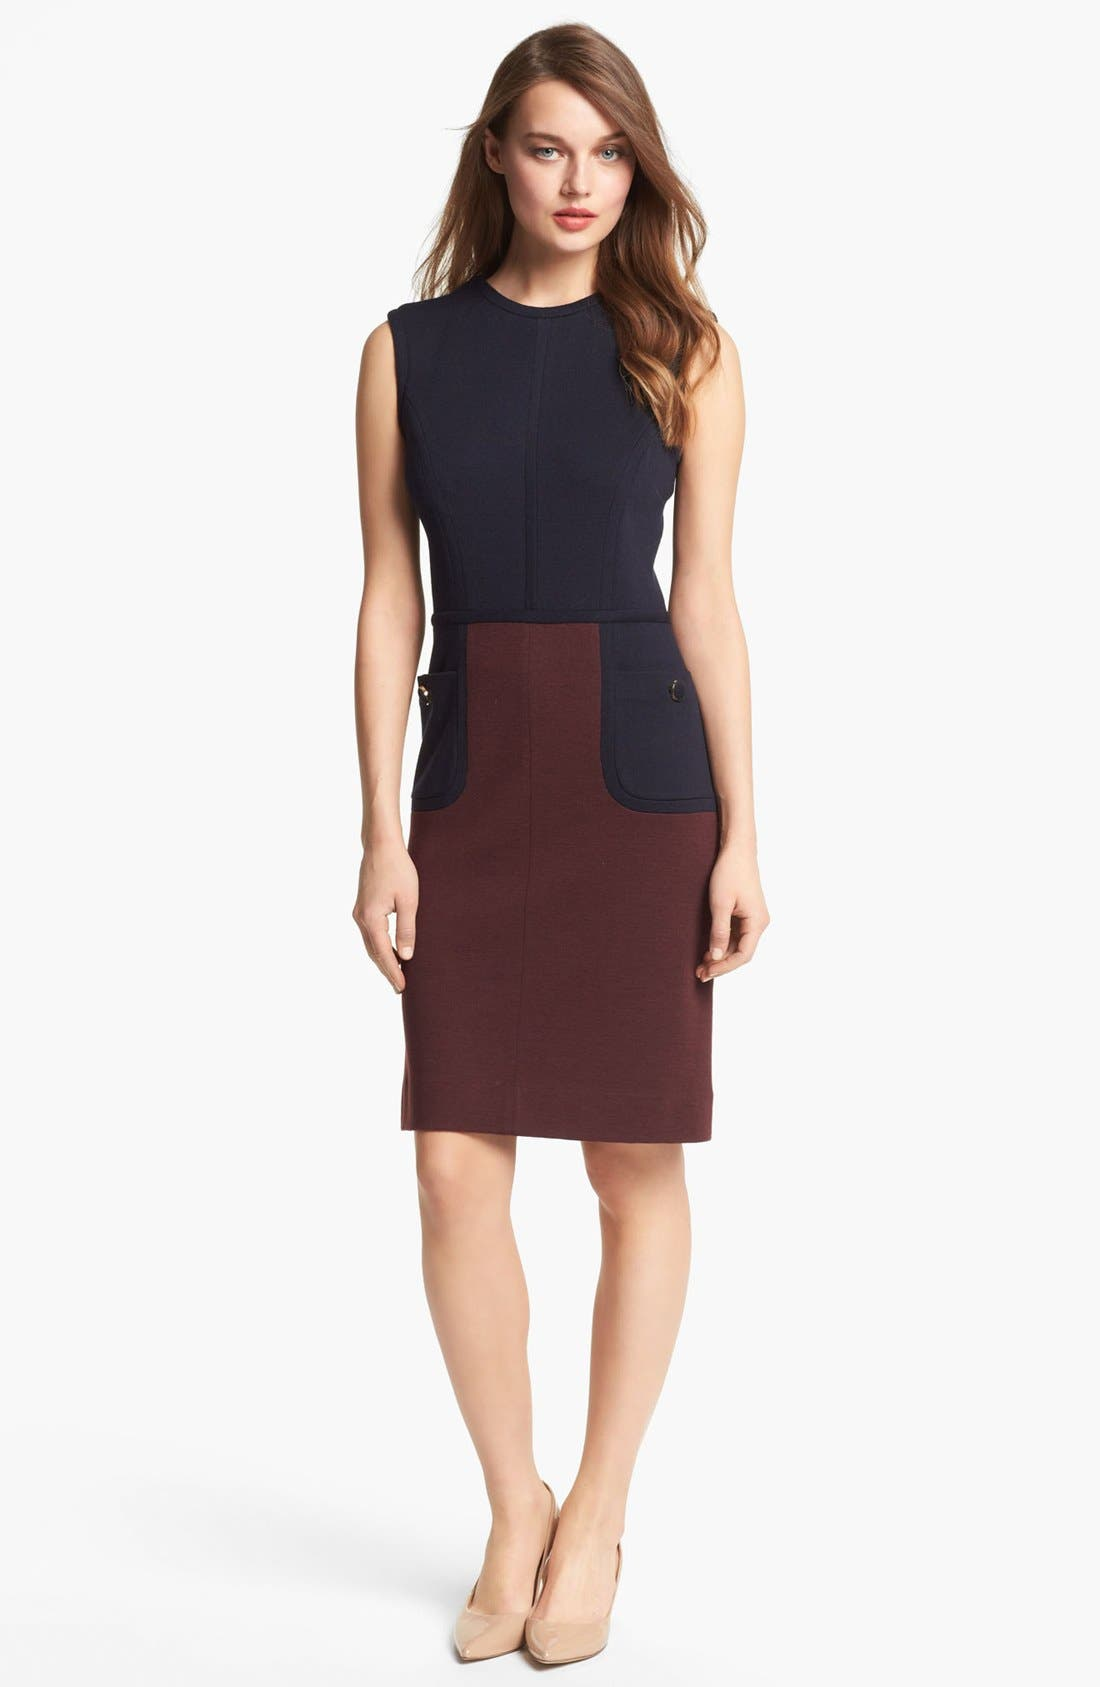 Alternate Image 1 Selected - Tory Burch 'Brianna' Colorblock Sheath Dress